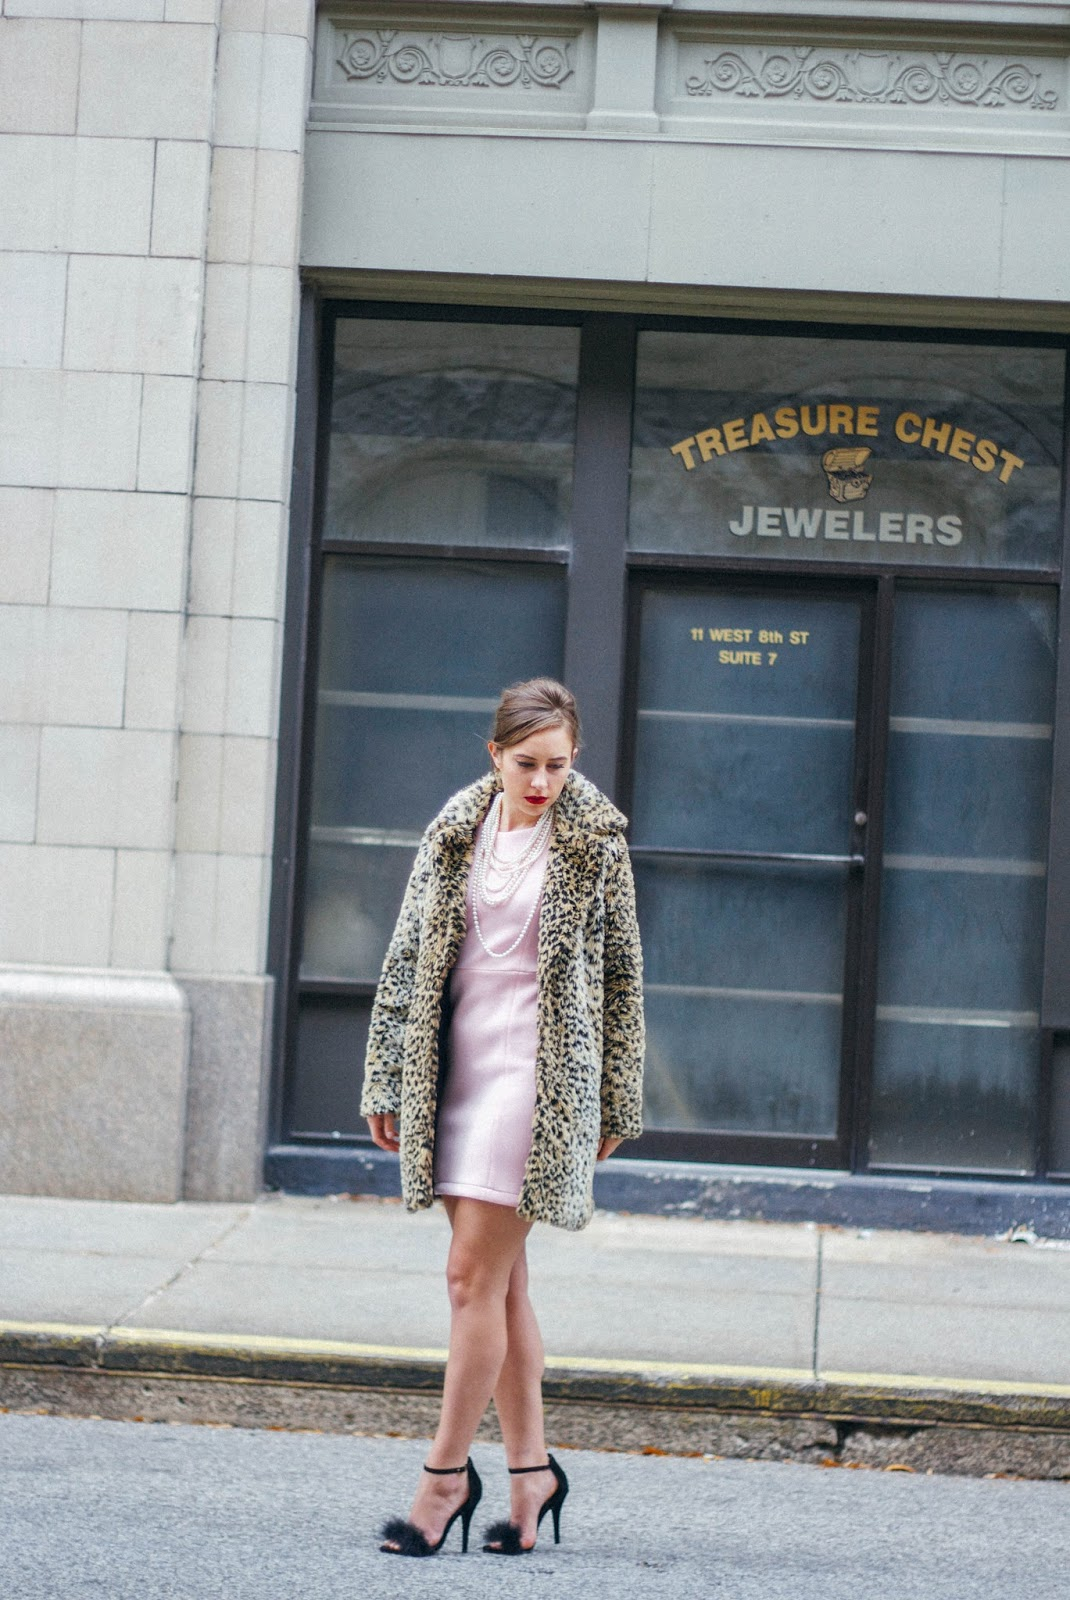 vintage, vintage style, audrey hepburn style, breakfast at tiffany's outfit, modern, pink nasty gal dress, fluffy black heels, retro, film, screenwriting, formal wear, fashion blogger, style blogger, classic look, old hollywood look, hollywood regency outfit,